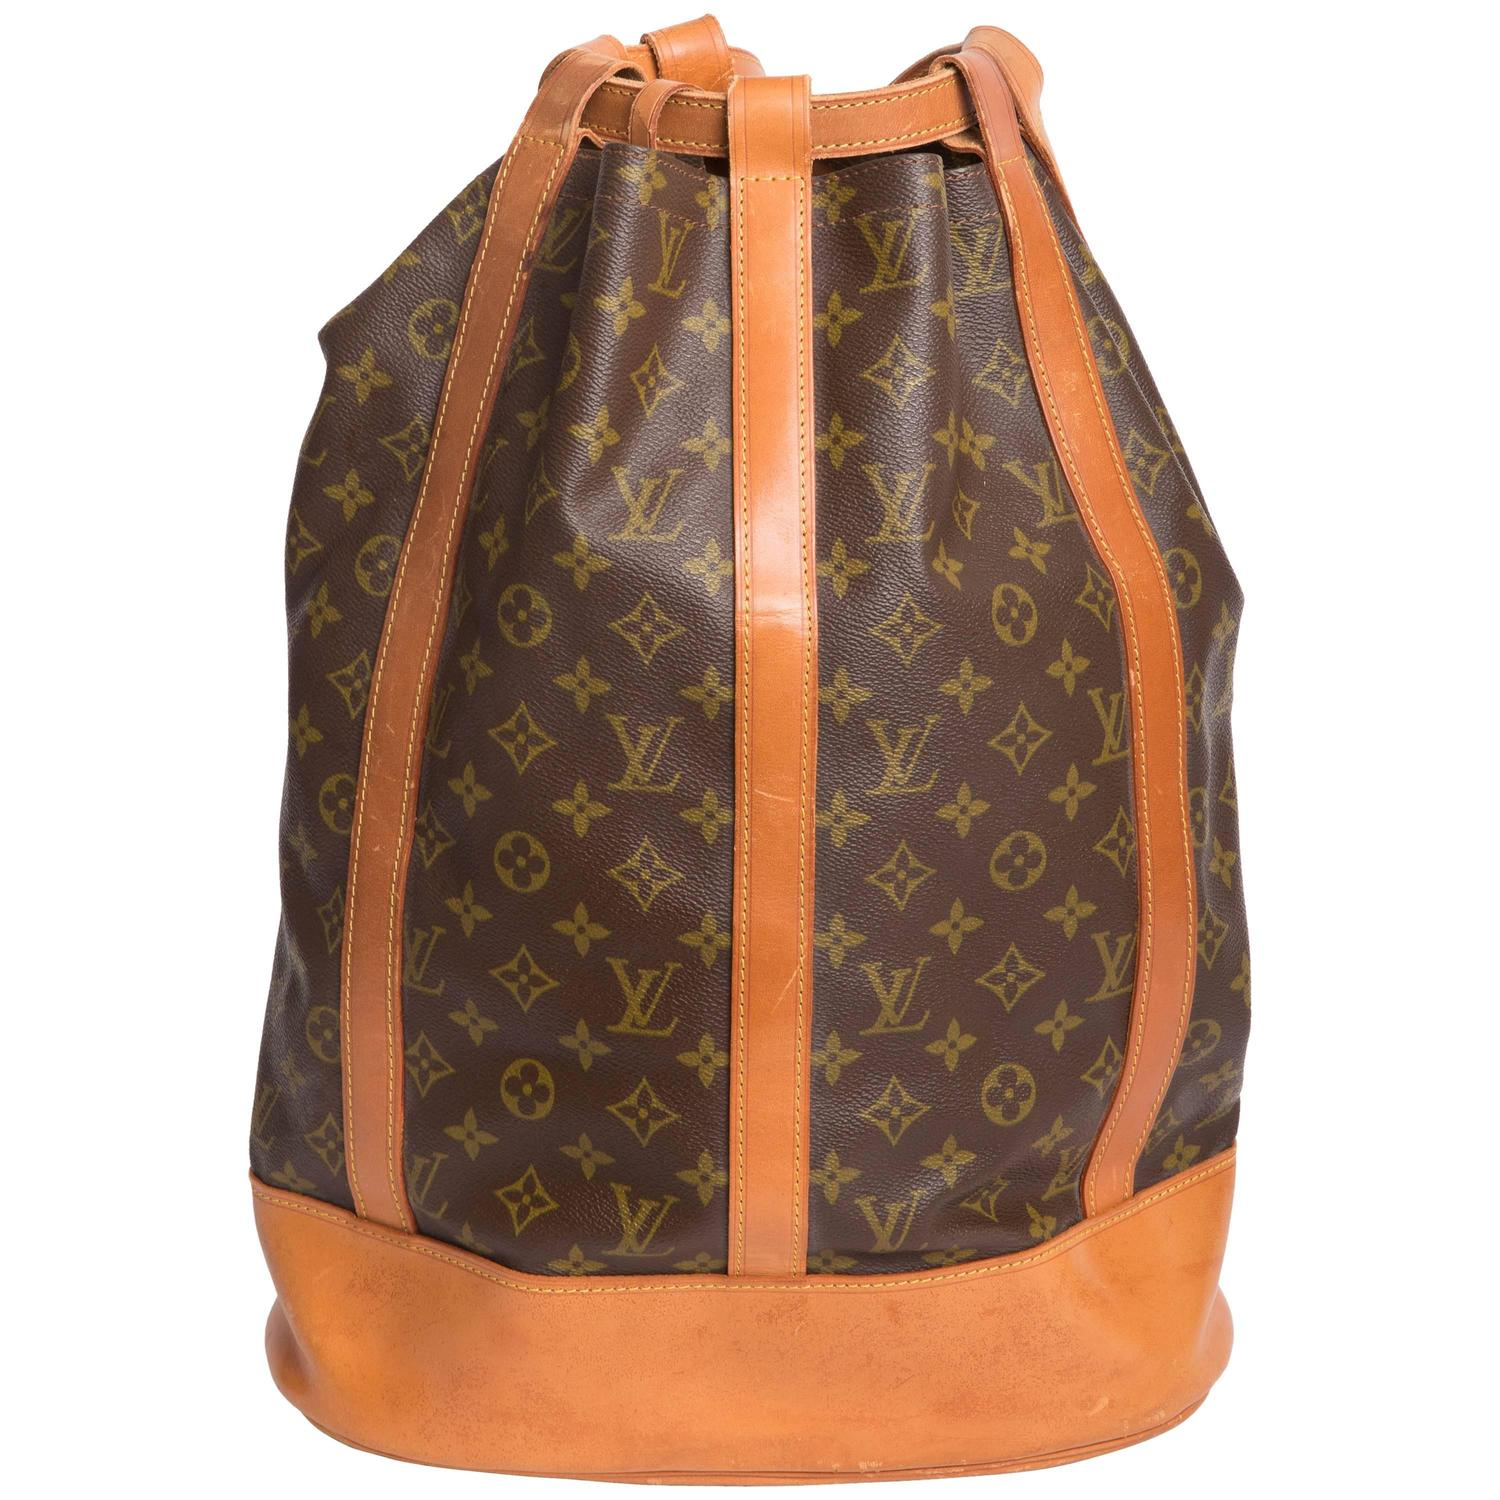 vintage louis vuitton monogram randonnee gm backpack sling at 1stdibs. Black Bedroom Furniture Sets. Home Design Ideas